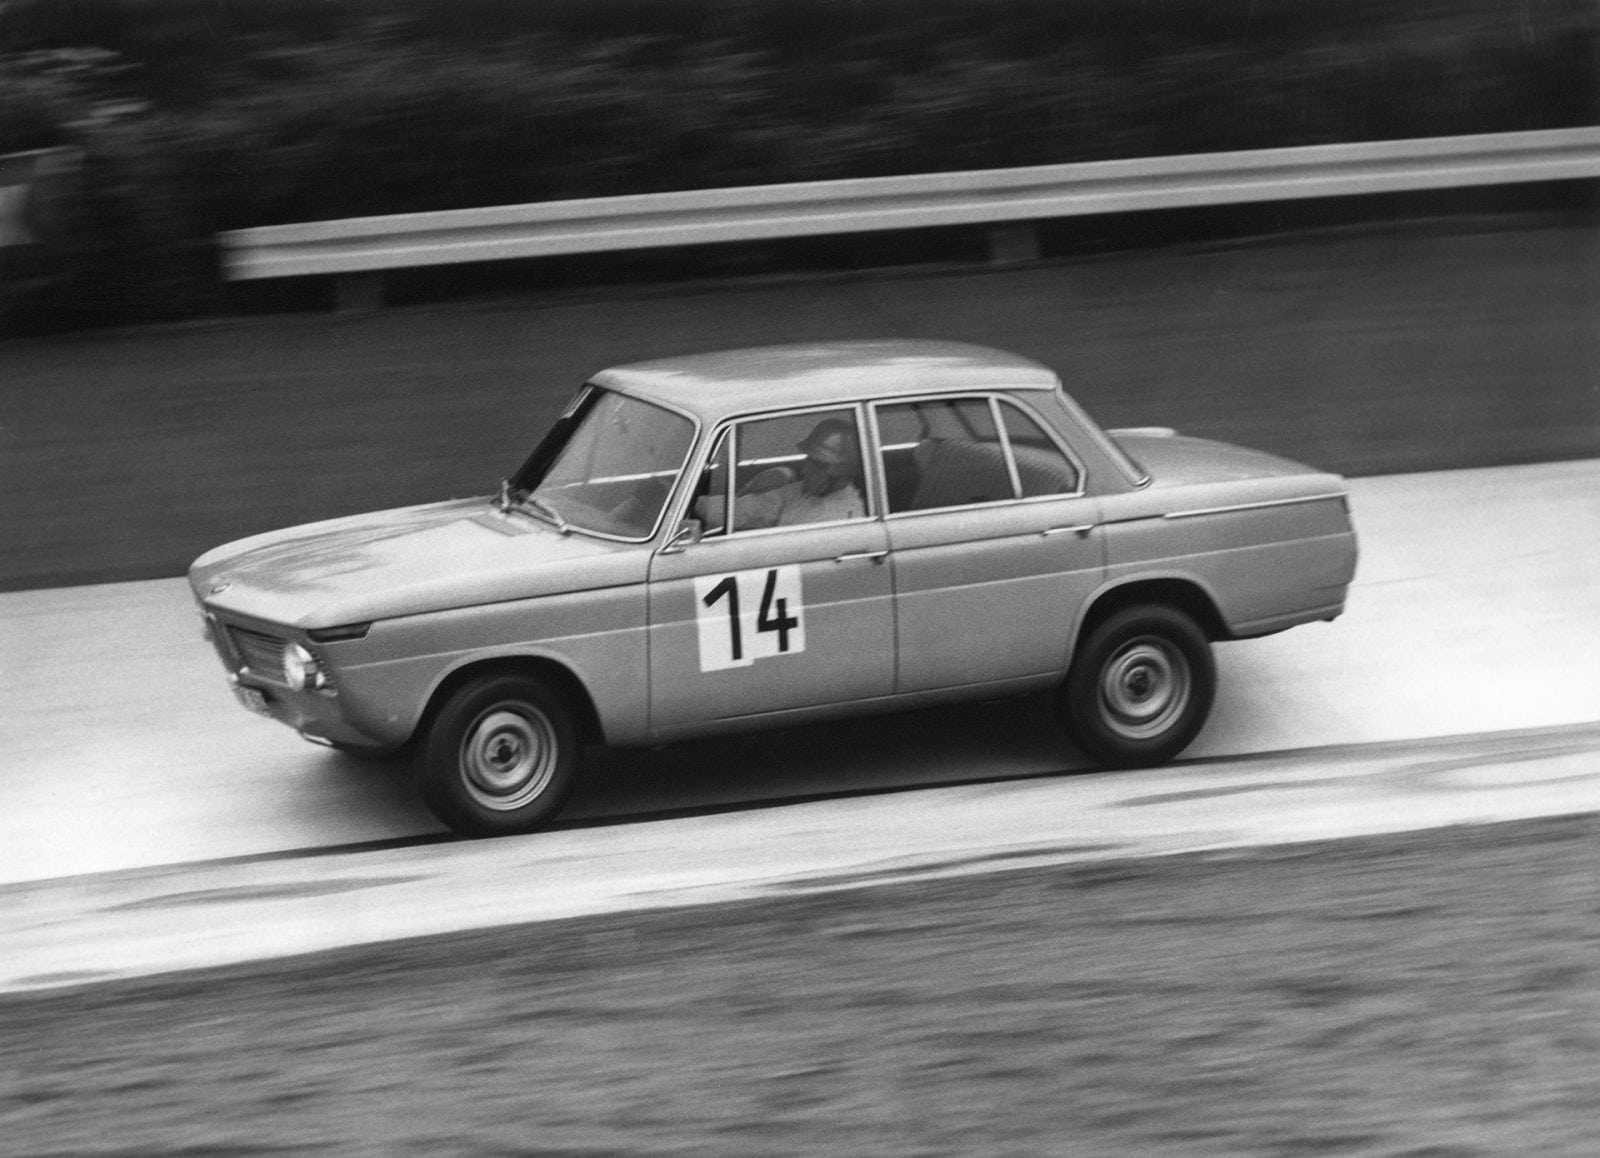 50 Years of BMW New Class, BMW 1800 TI in the 12 Hour Race at the Nürburgring 1964 (03/2011)